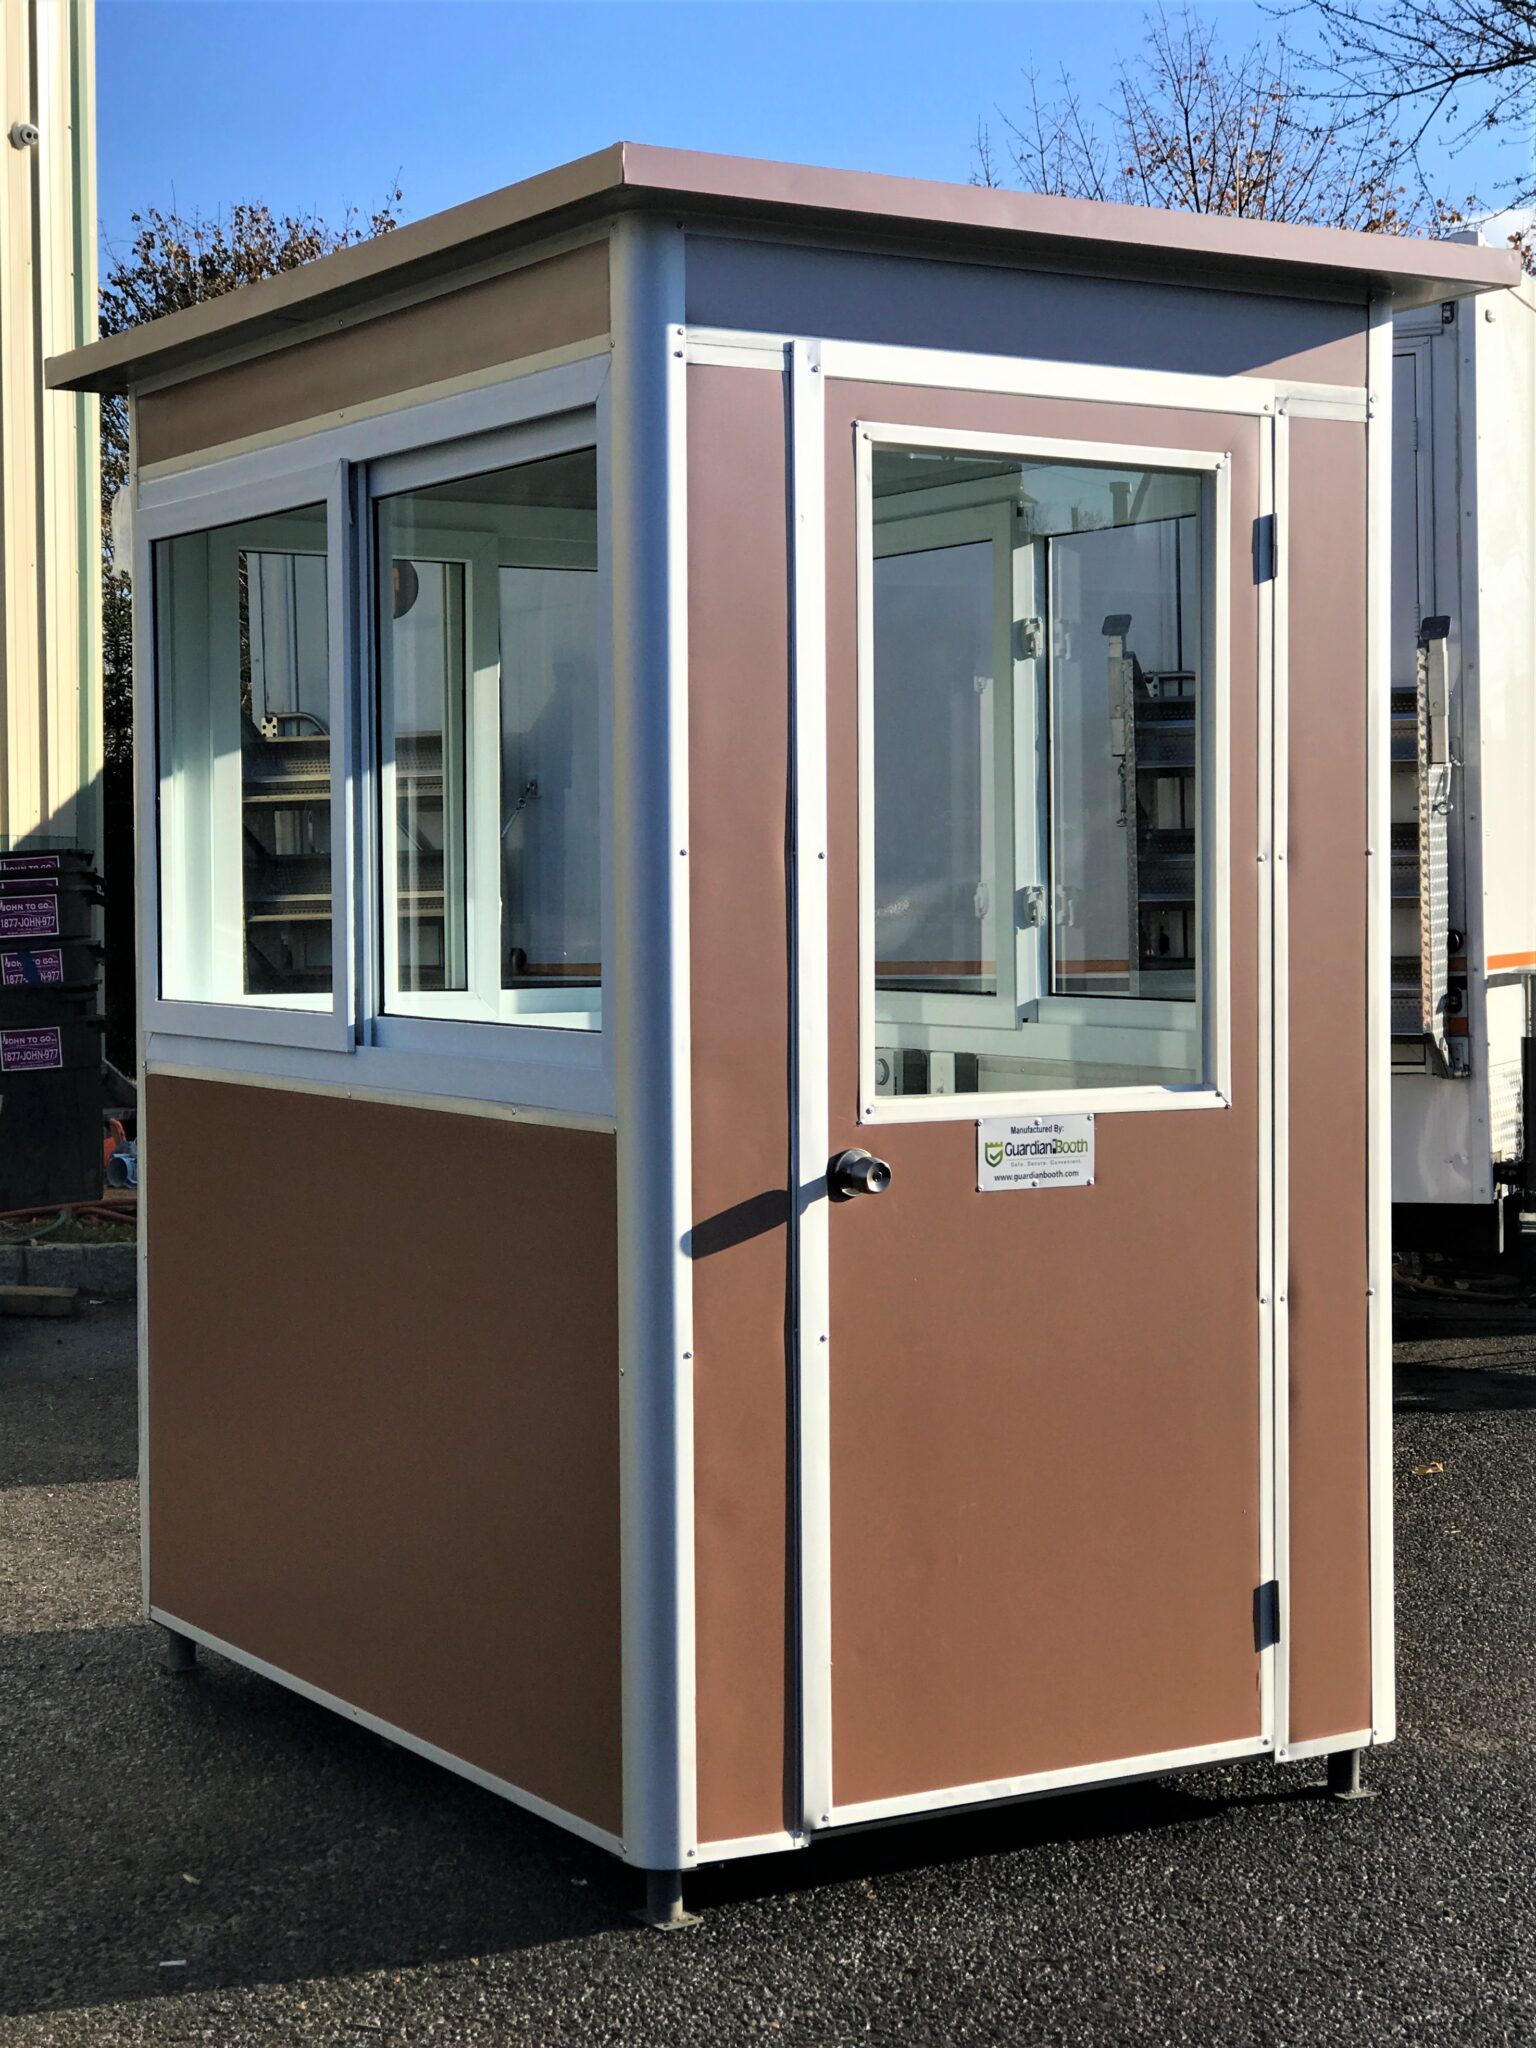 4x6 Parking Booth in Houston, TX with Swing Door, Sliding Windows